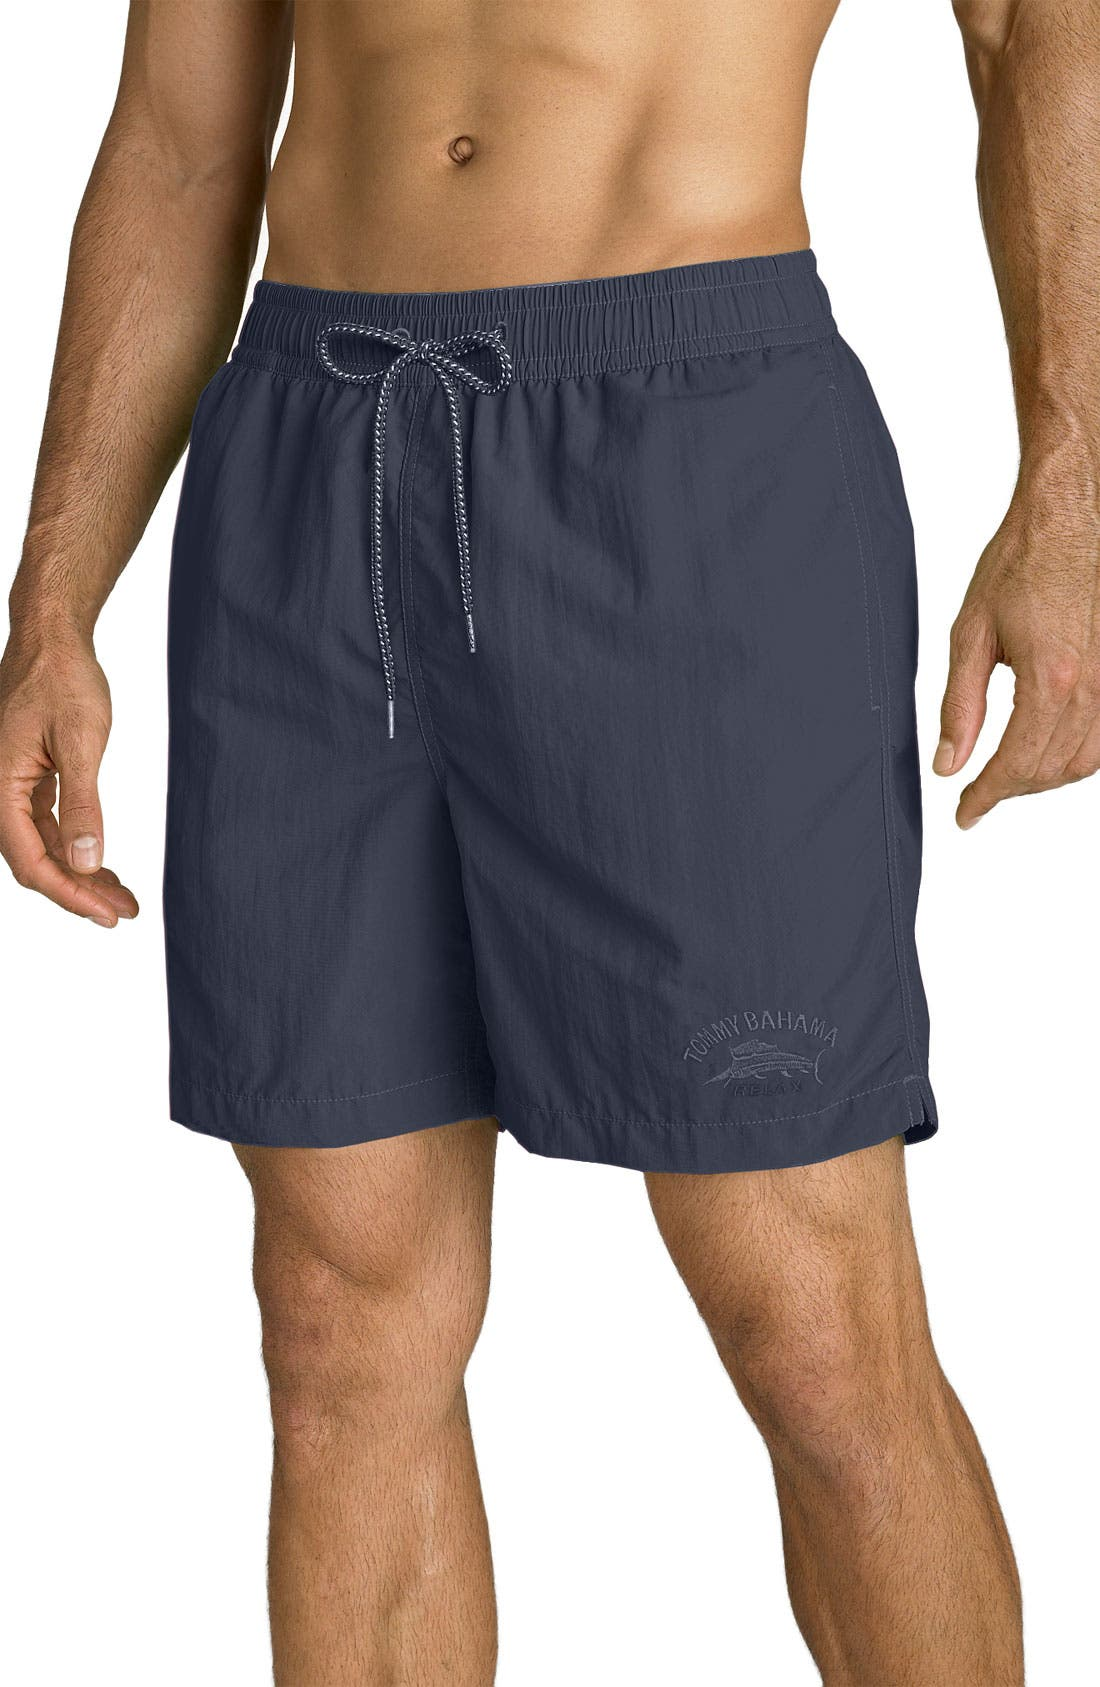 Alternate Image 1 Selected - Tommy Bahama 'Happy Go Cargo' Volley Swim Trunks (Big & Tall)